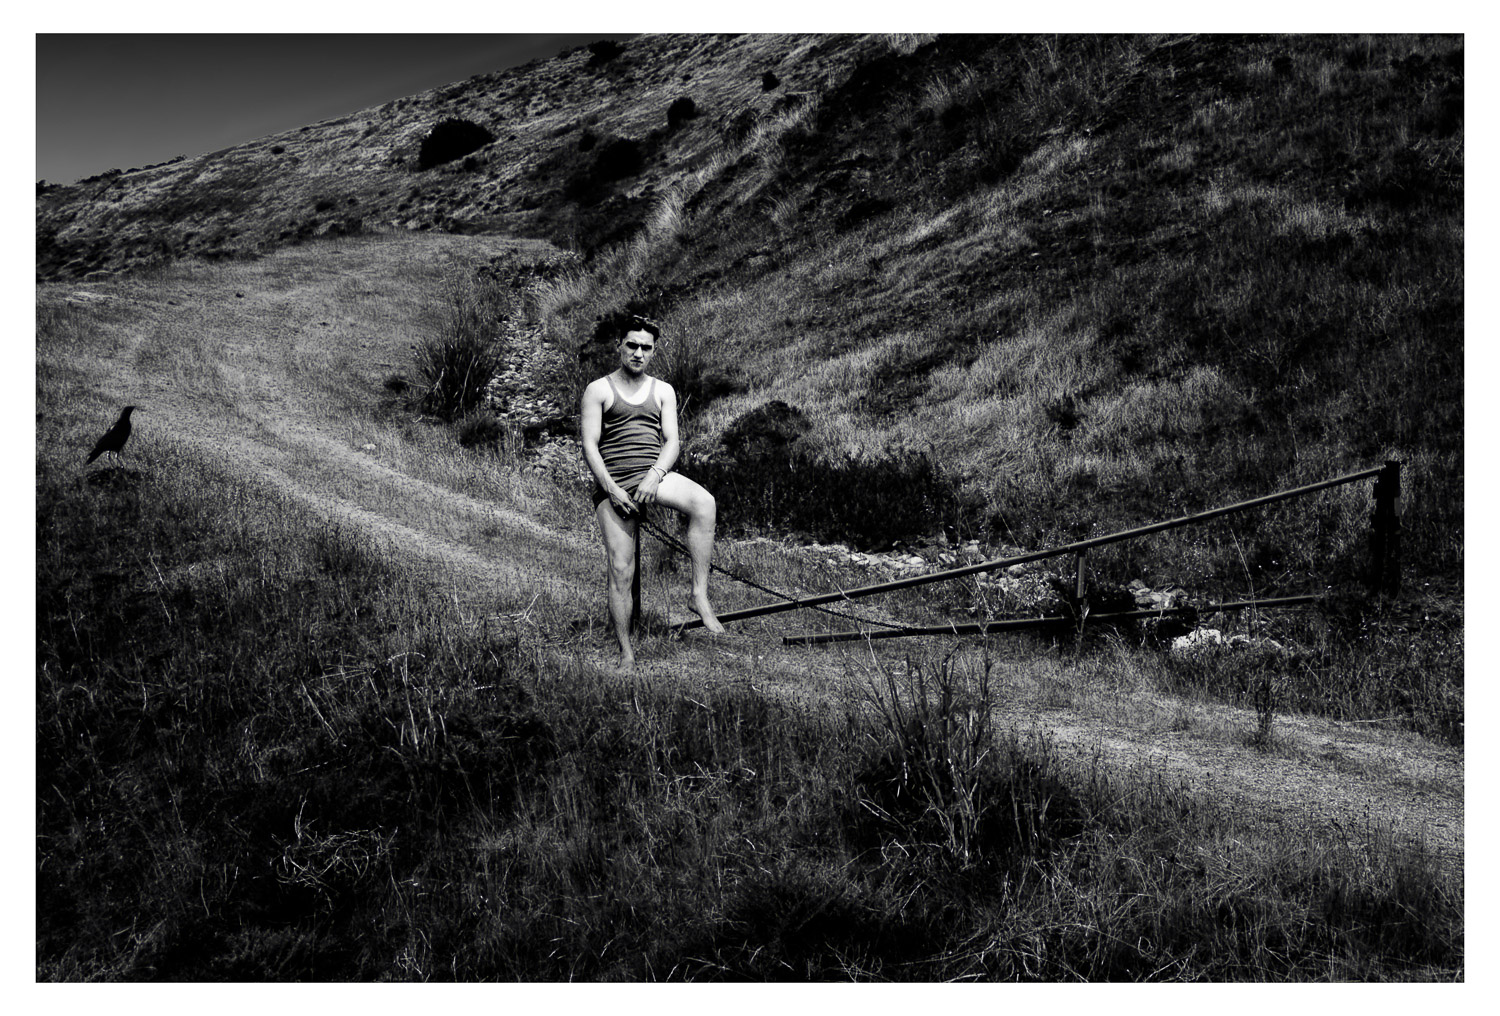 #1 from the series, Desolation's Comfort   Mark Lindsay